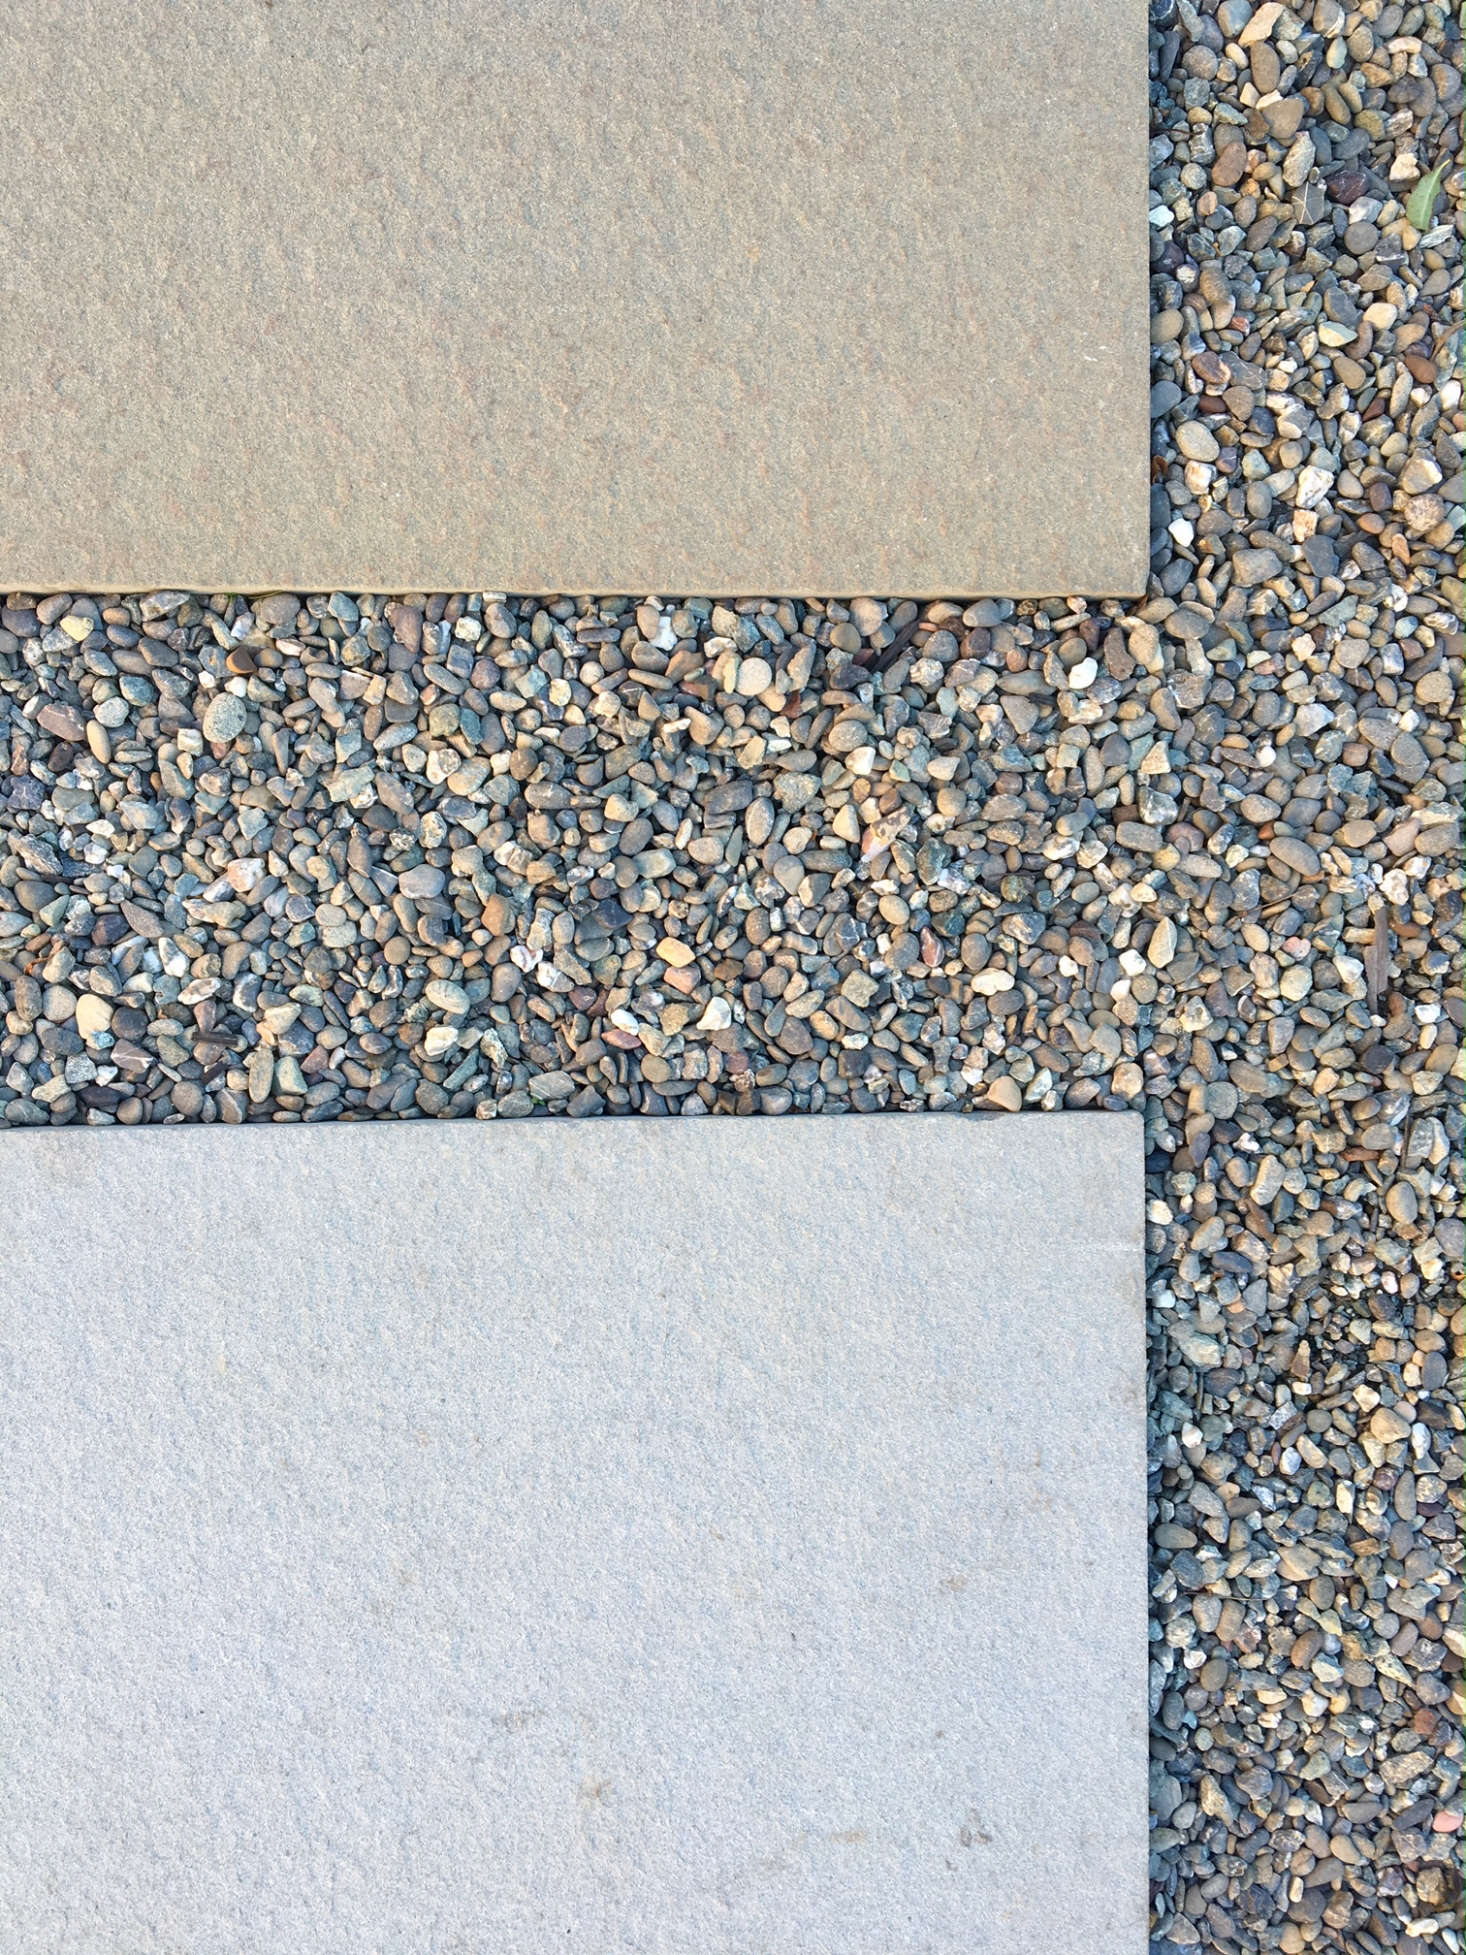 Pea Gravel Filler Is Used As A Permeable U201cgroutu201d Between Oversize Concrete  Patio Pavers